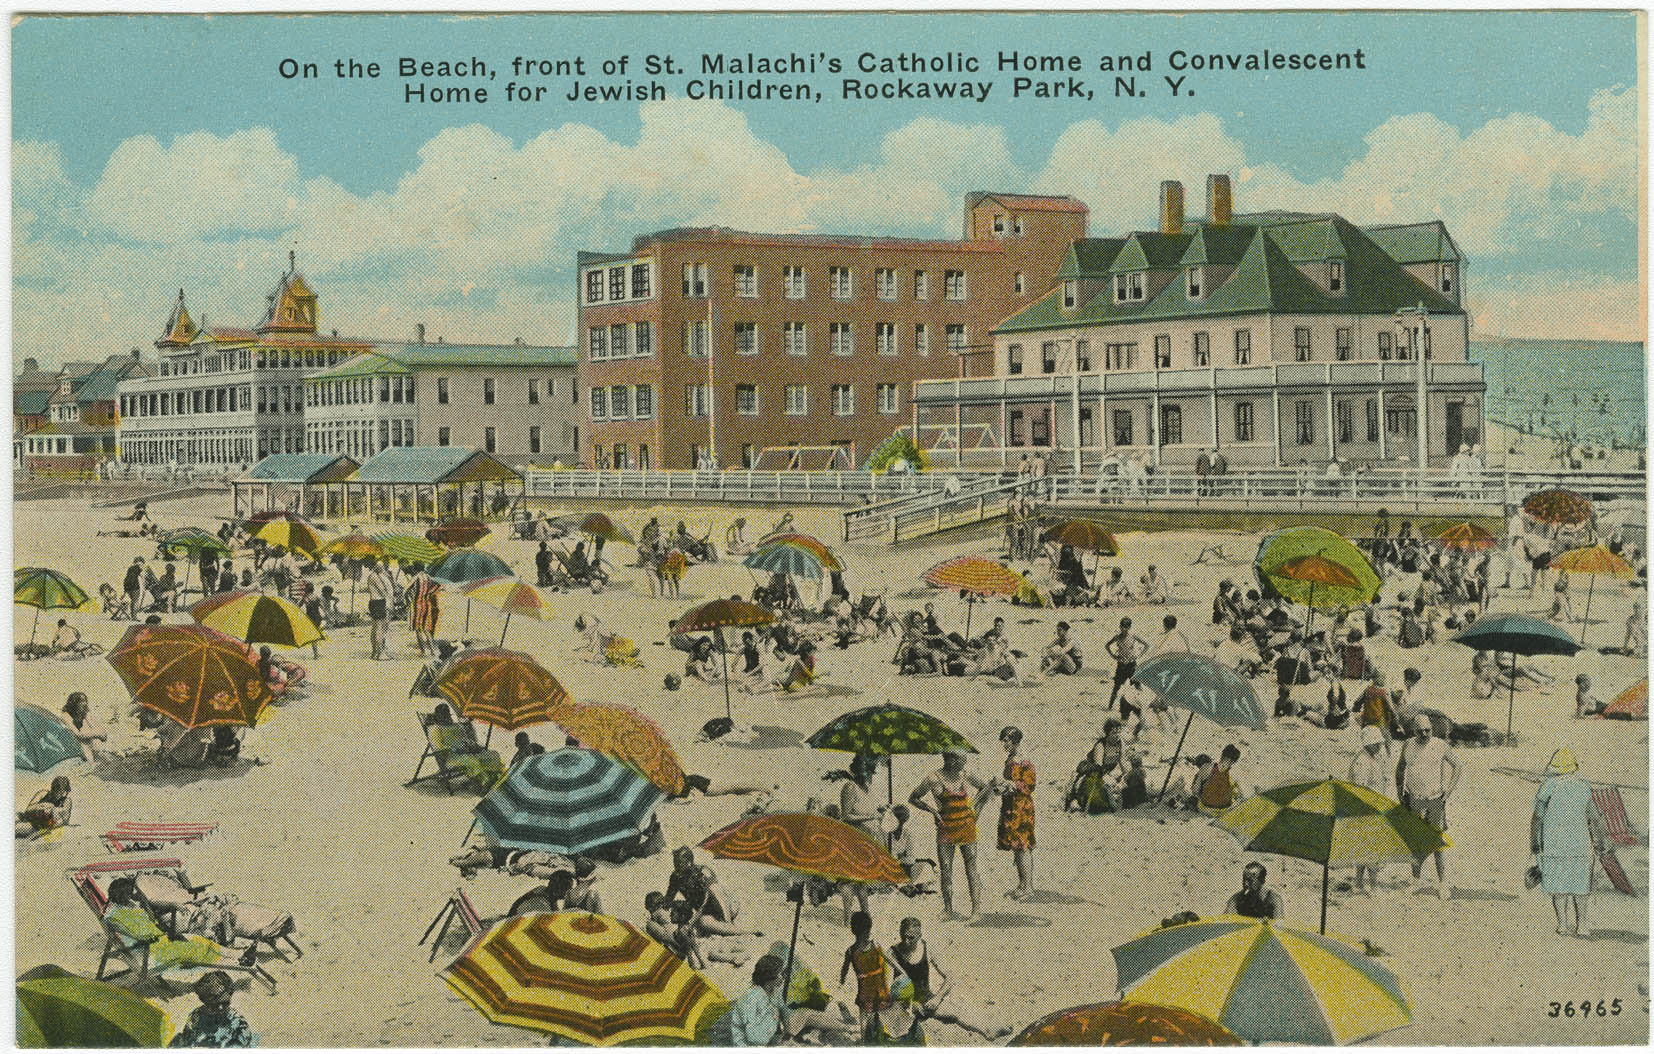 On the beach, front of St. Malachi's Catholic Home and Convalescent Home for Jewish Children, Rockaway Park, N.Y.